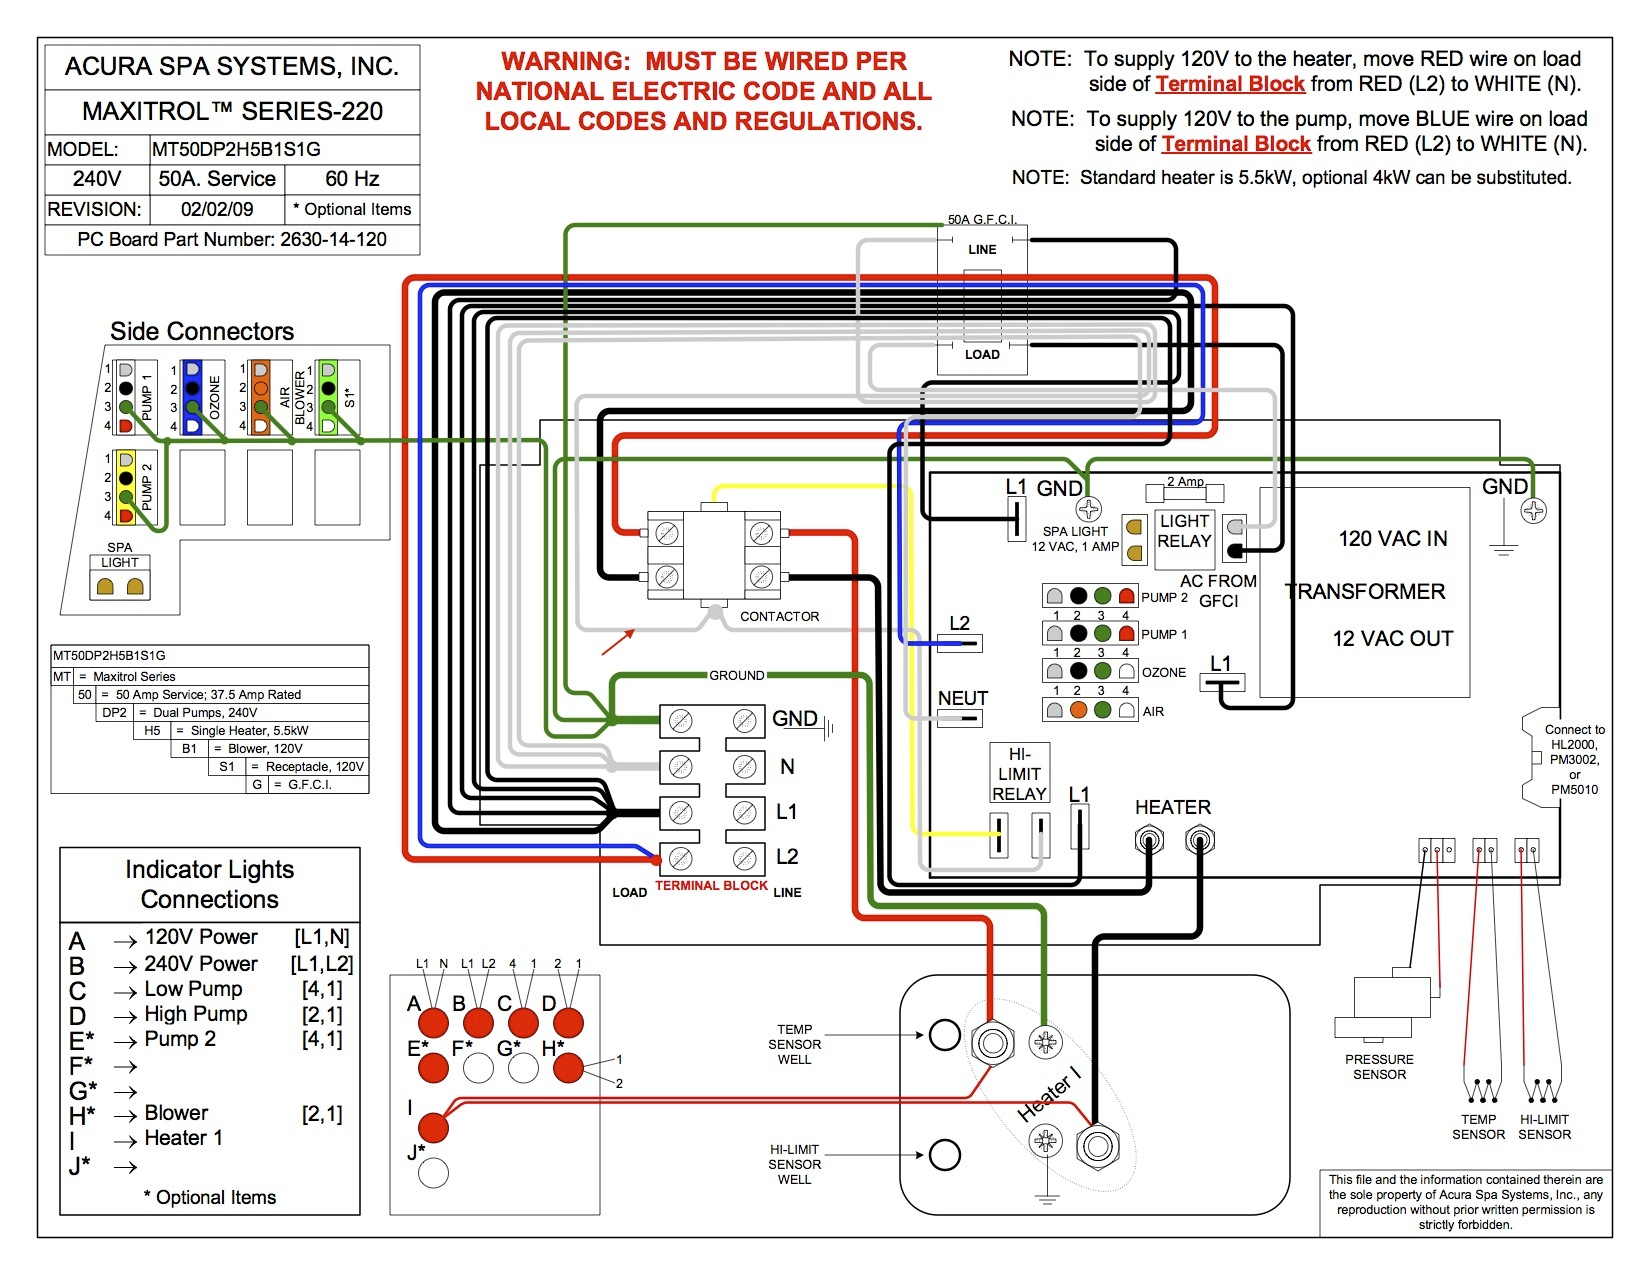 Acura Spa Wiring Diagram MT50DP2H5B1S1G hydro quip wiring diagram sears wiring diagram \u2022 free wiring morgan 4 4 wiring diagram at couponss.co